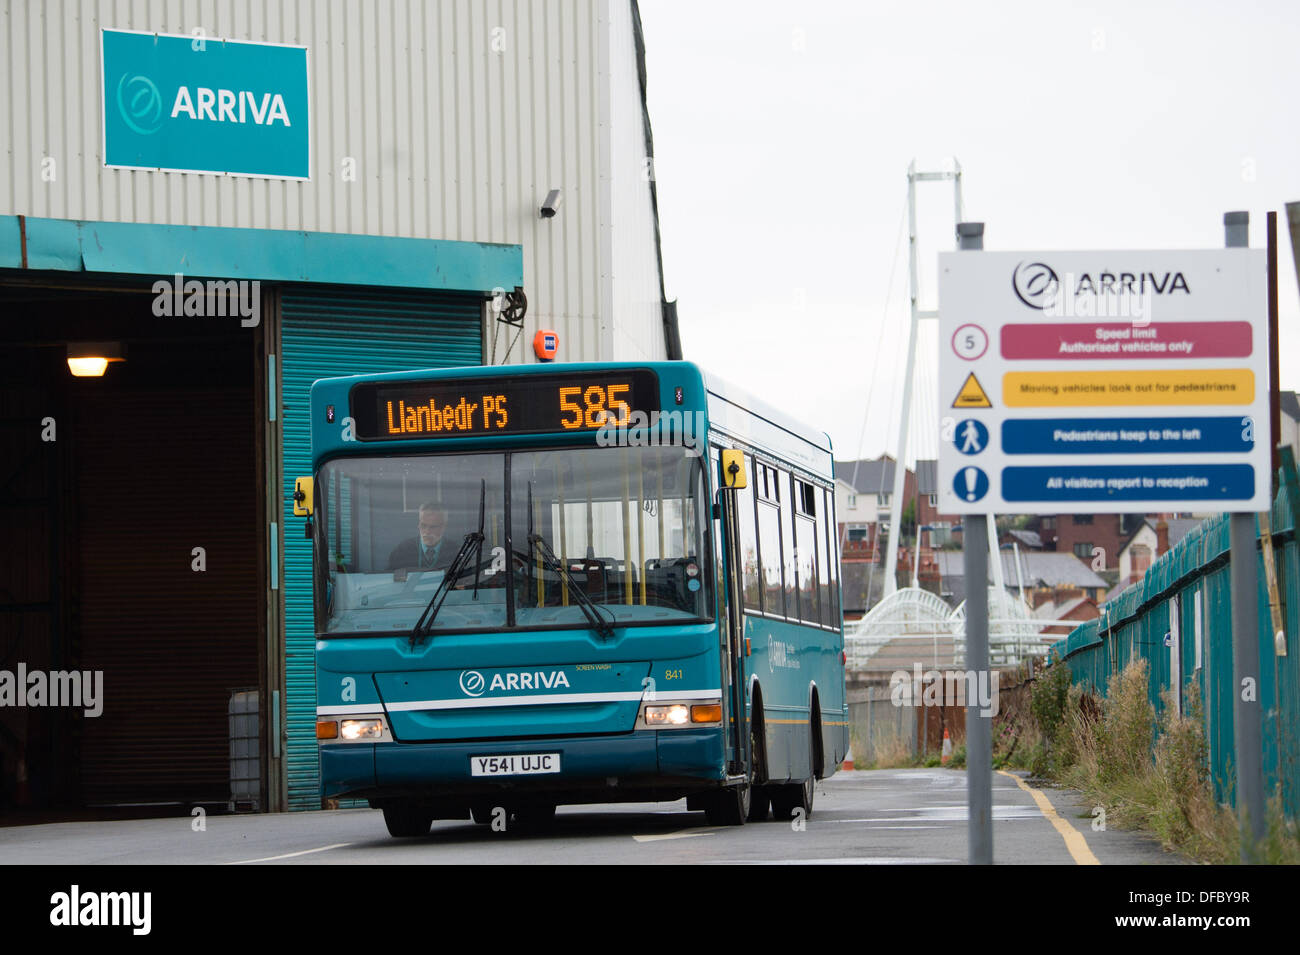 Aberystwyth Wales UK,  2 October 2013 In a surprise announcement  Arriva Buses Wales said it was pulling out of 6 routes in and around Aberystwyth, leading the closure of the local bus depot and garages in nearby towns on December 21 this year. The axing of the services will lead to the loss of 46 jobs. Arriva Buses Wales blamed public transport funding and fuel costs. 'A recent network review has led us to believe that current services in this area cannot, despite our best efforts, continue,' the company said in a statement. photo Credit:  keith morris/Alamy Live News - Stock Image